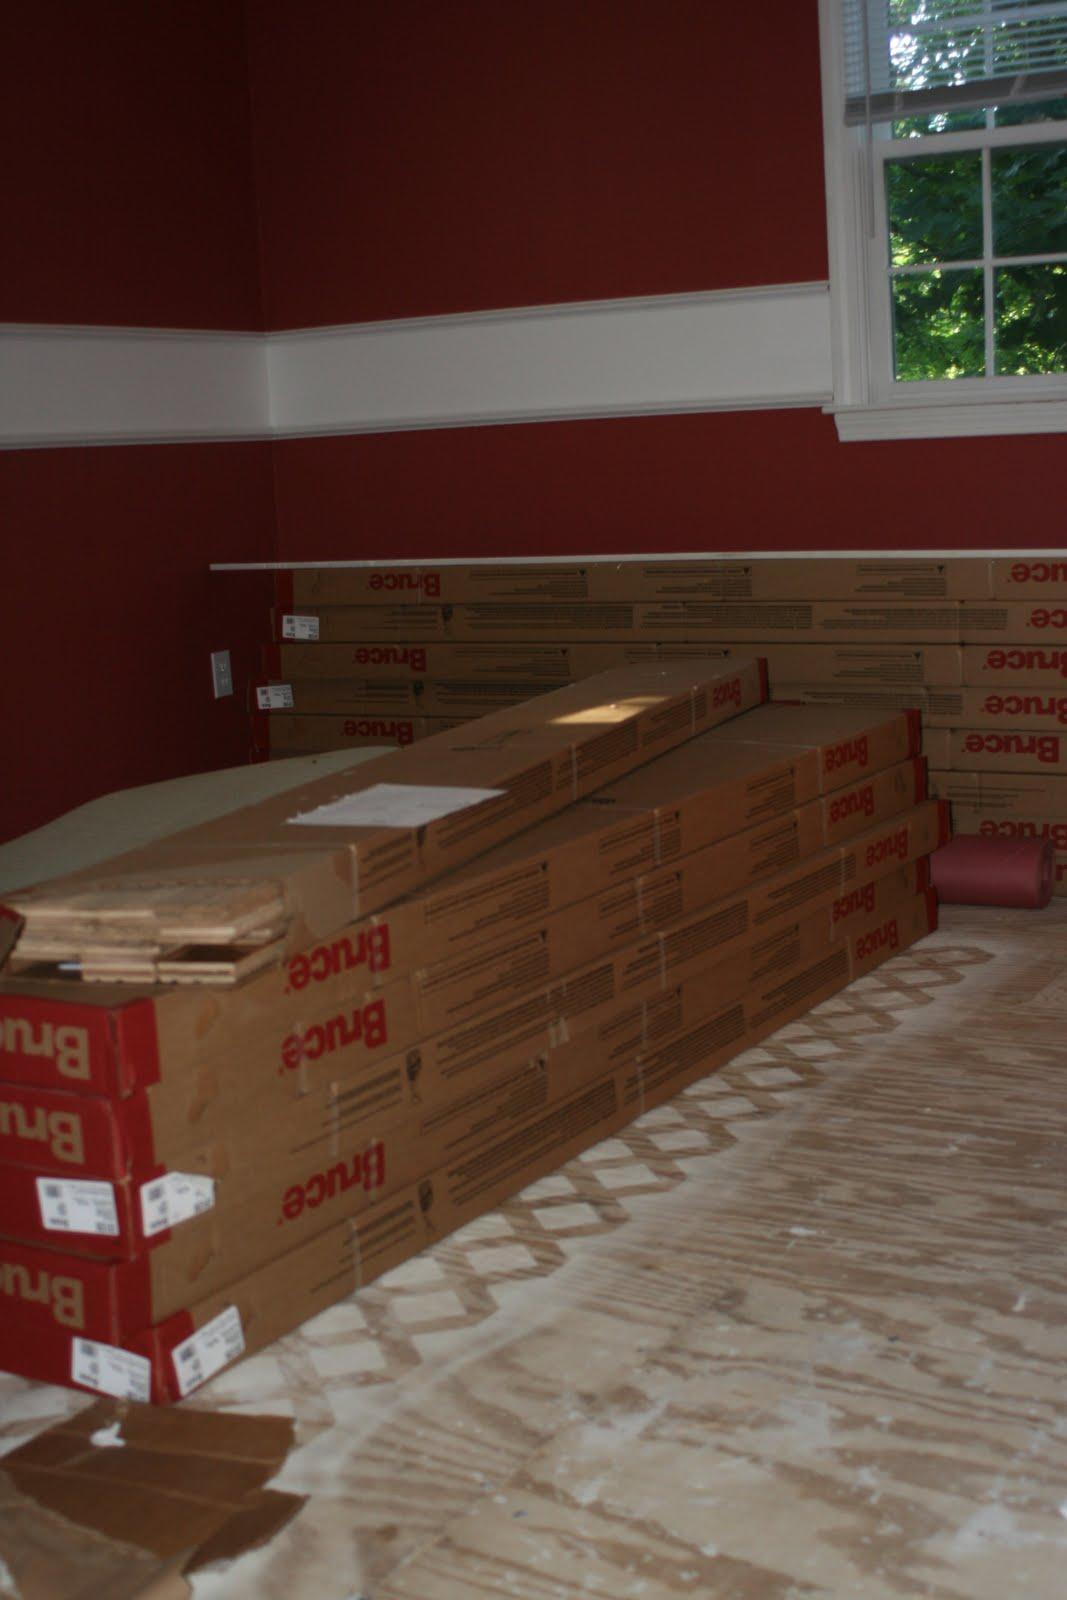 Flooring in a fortnight